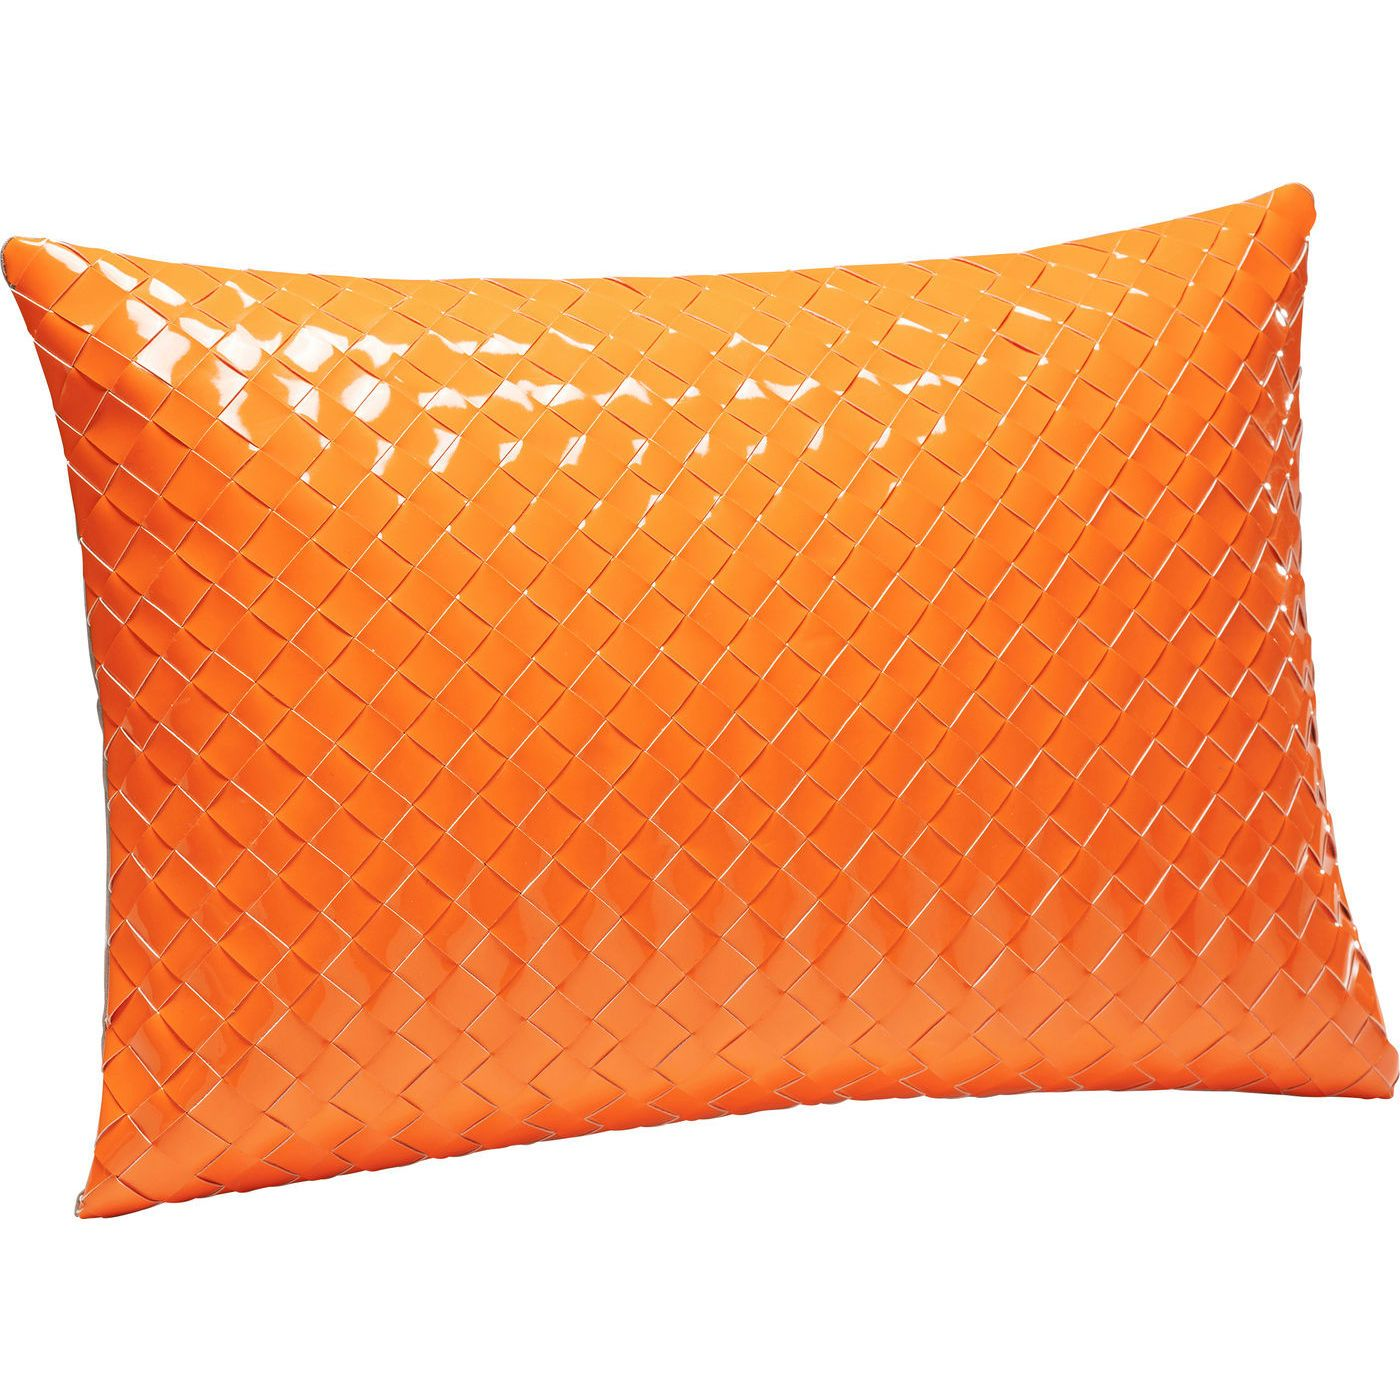 Kissen Orange Cushion Tessuto 35x50cm Kare Design Kare Karedesign Cushion